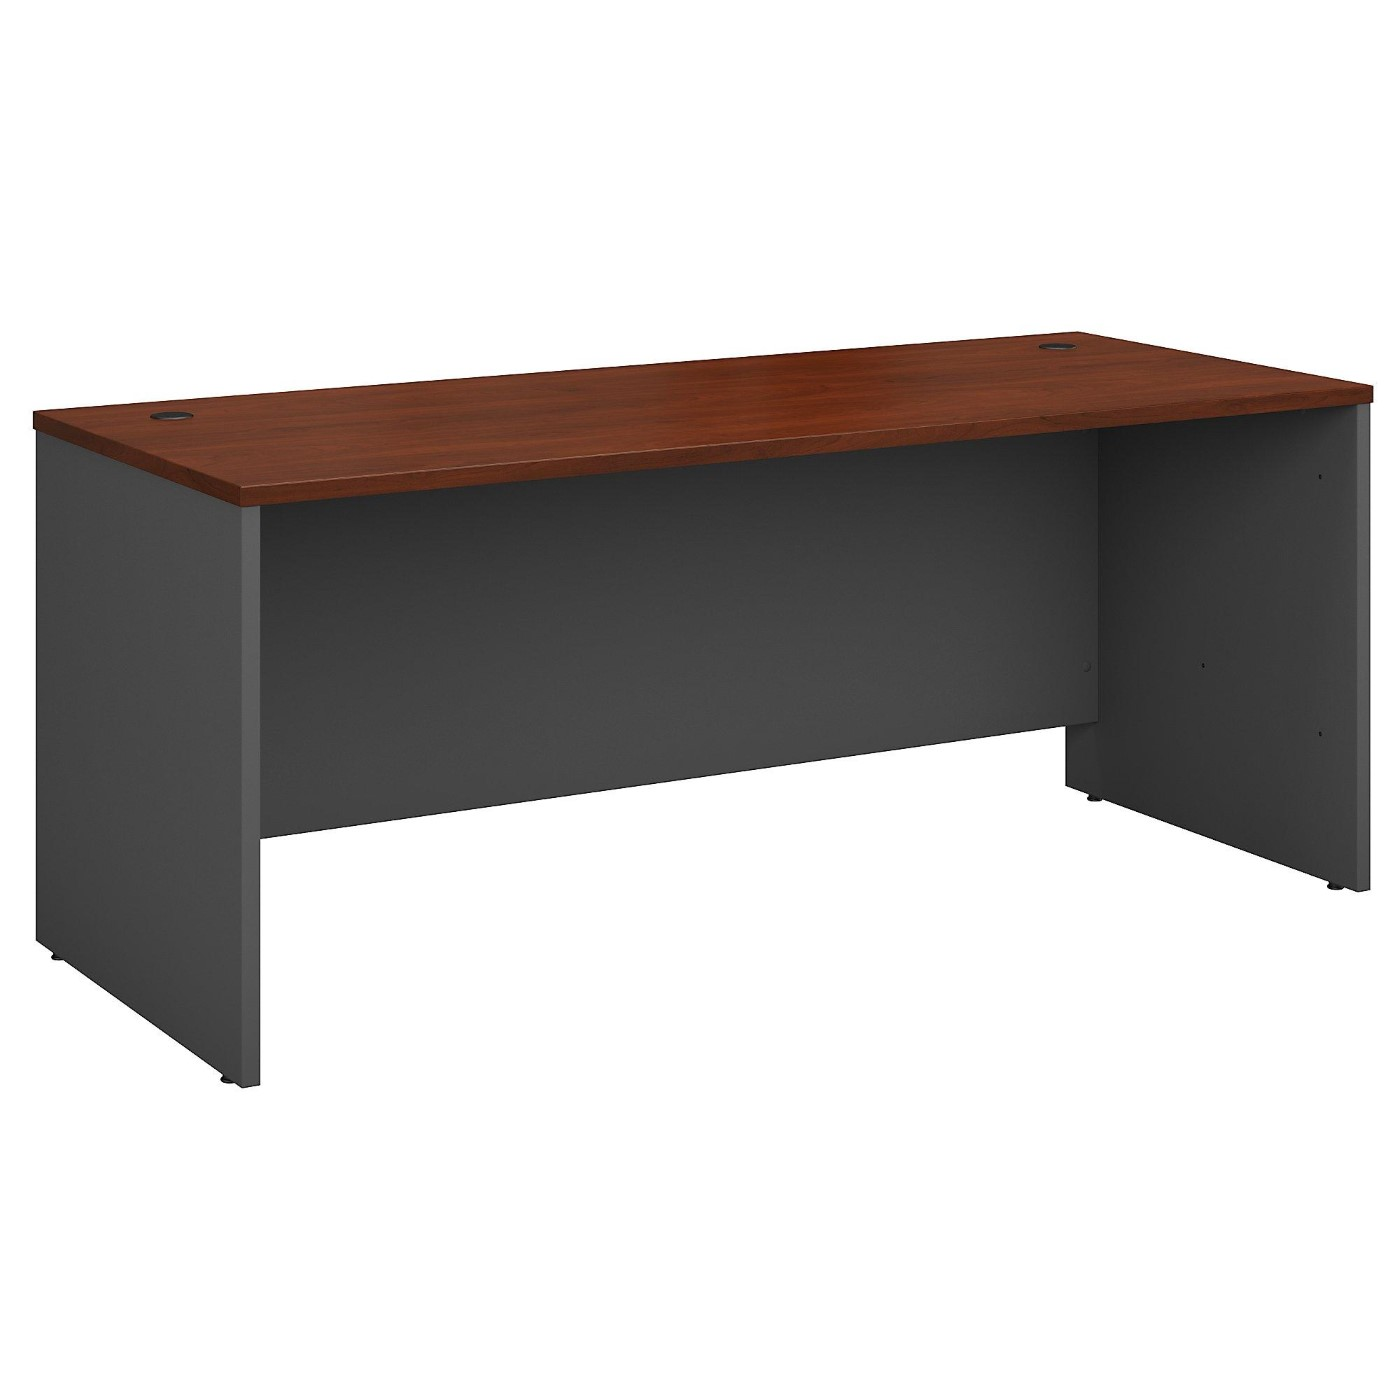 BUDGET COUNCIL CHAMBERS DESK 72W X 30D. FROM ONE UNIT UP TO AS MANY AS NEEDED. DETAILS BELOW. FREE SHIPPING TOO: